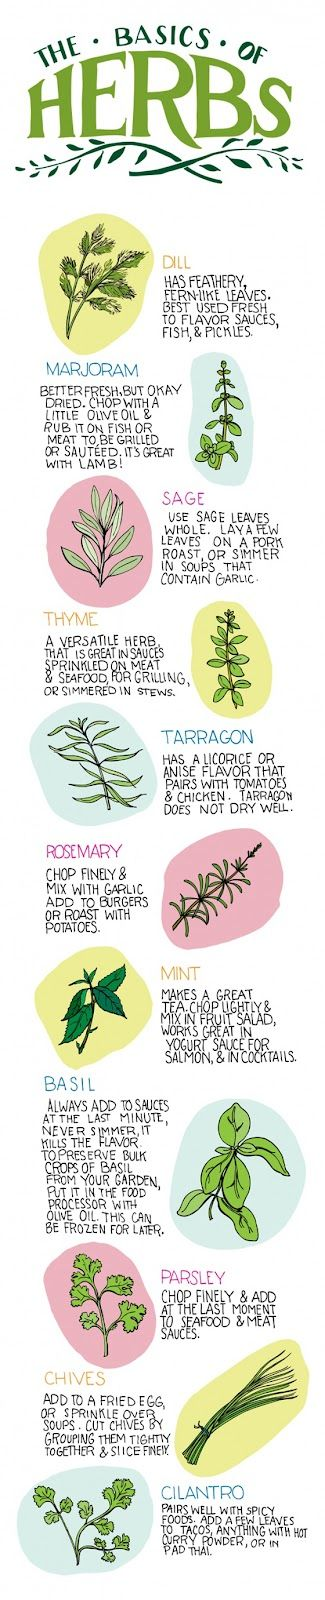 herb basics for my herb garden :)